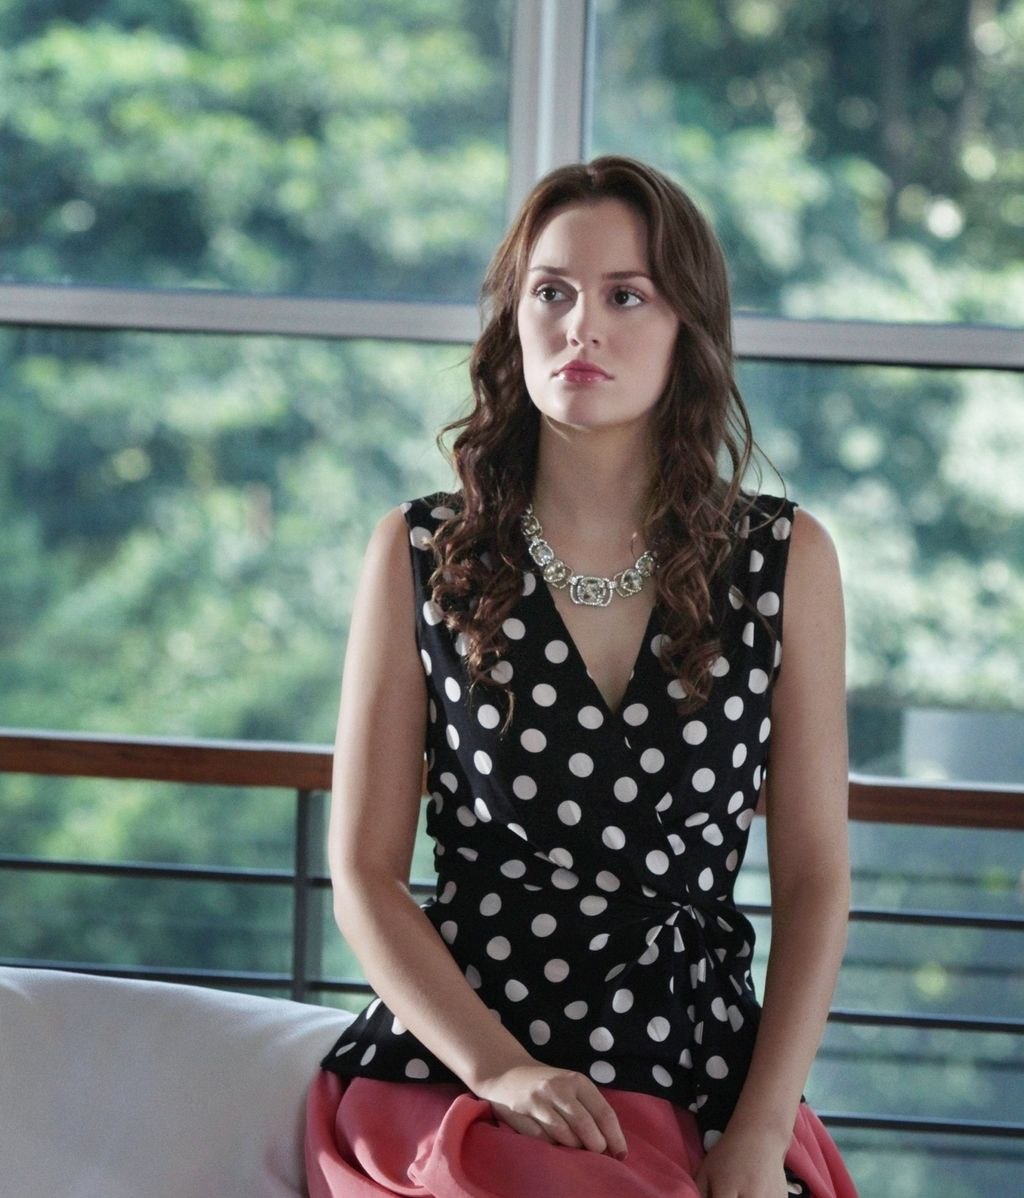 Leighton Meester interpreta a Blair Waldorf en 'Gossip girl'